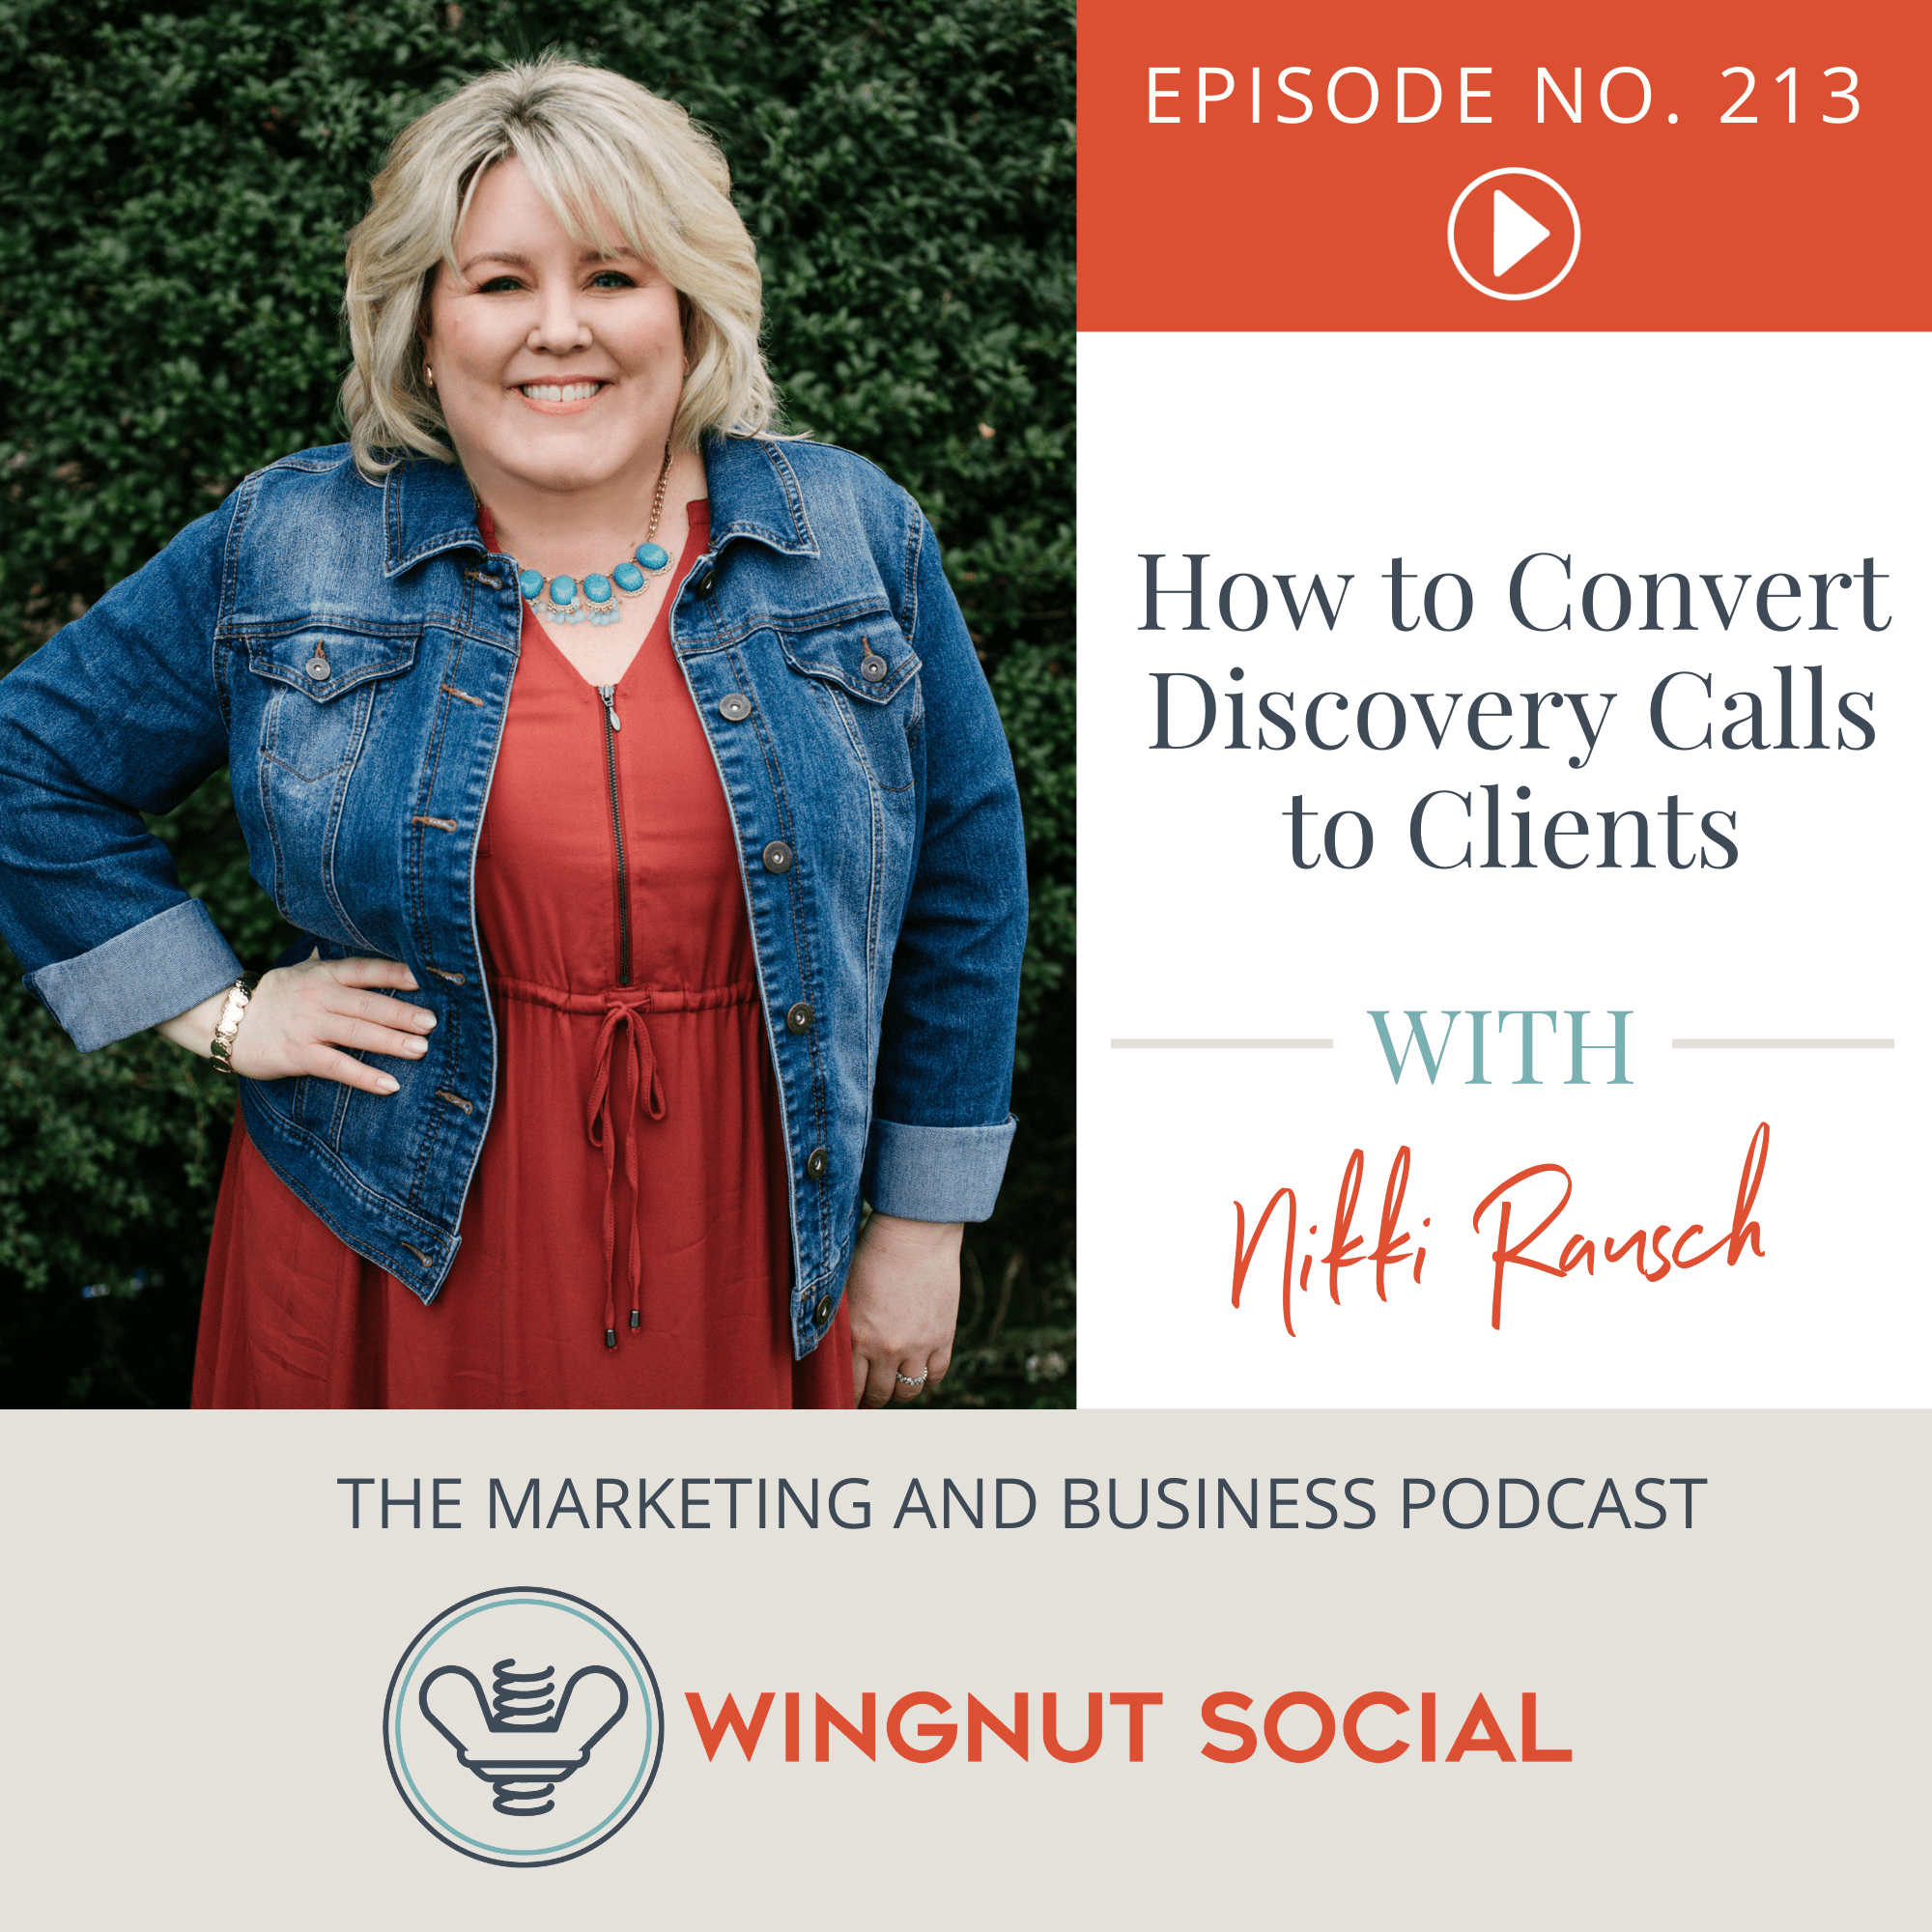 How to Convert Discovery Calls to Clients with Nikki Rausch - Episode 212